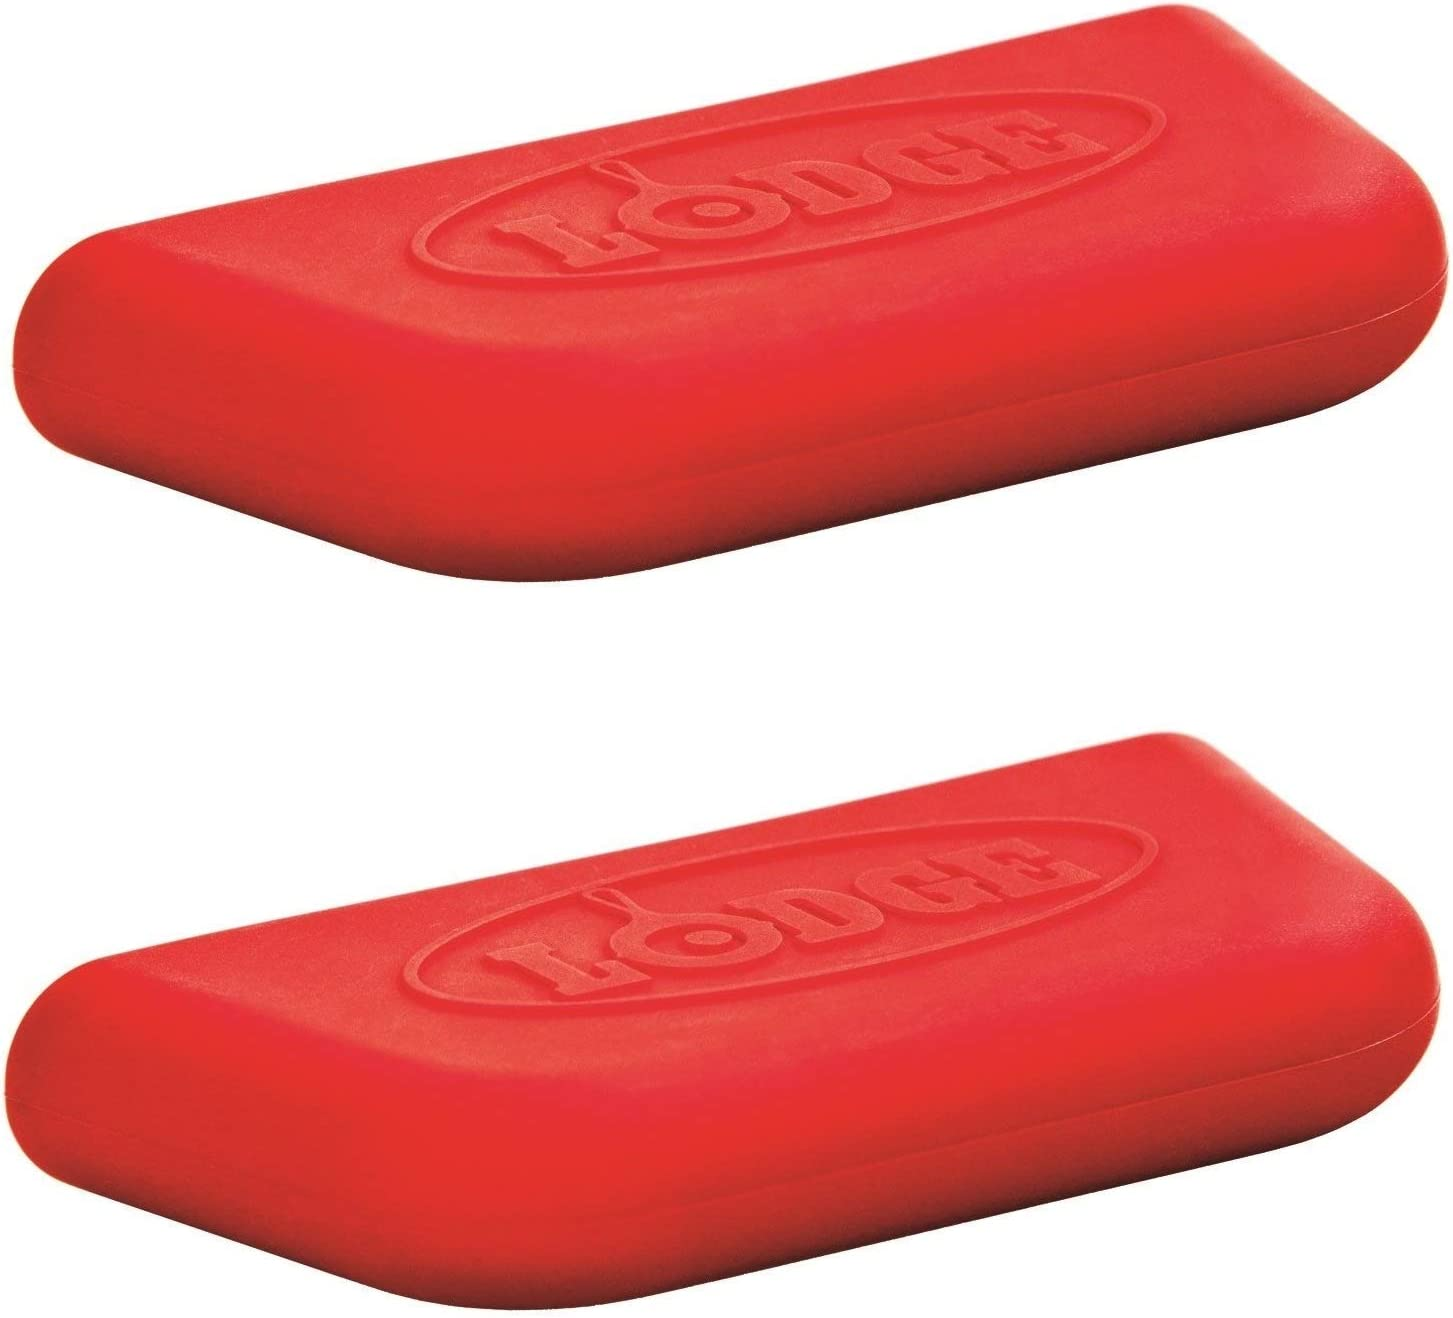 Lodge ASAHH41 Silicone Assist Handle Holder Red